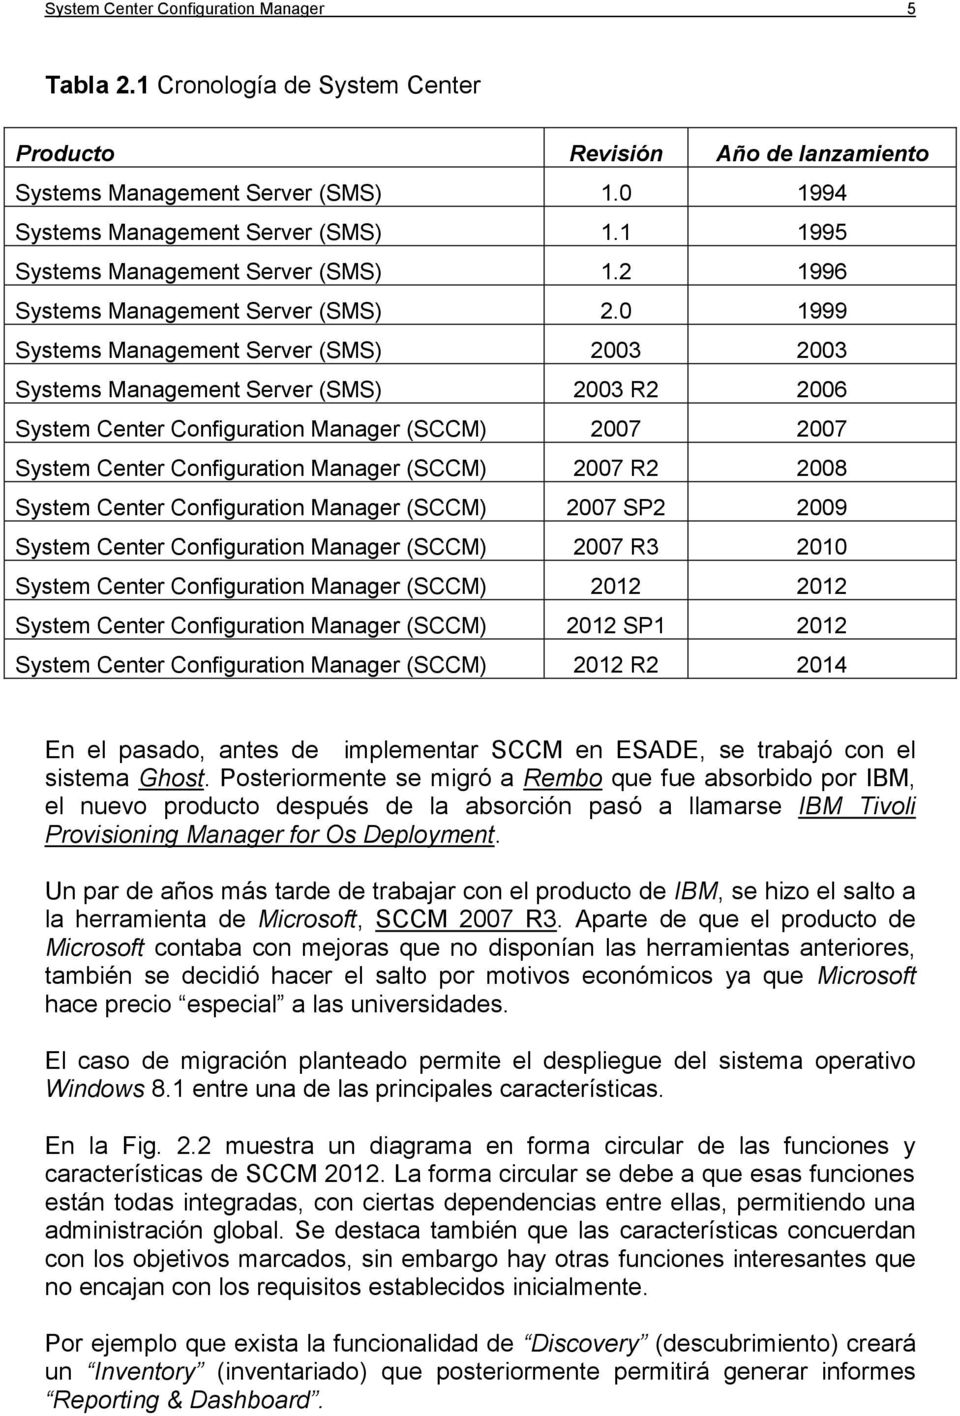 0 1999 Systems Management Server (SMS) 2003 2003 Systems Management Server (SMS) 2003 R2 2006 System Center Configuration Manager (SCCM) 2007 2007 System Center Configuration Manager (SCCM) 2007 R2